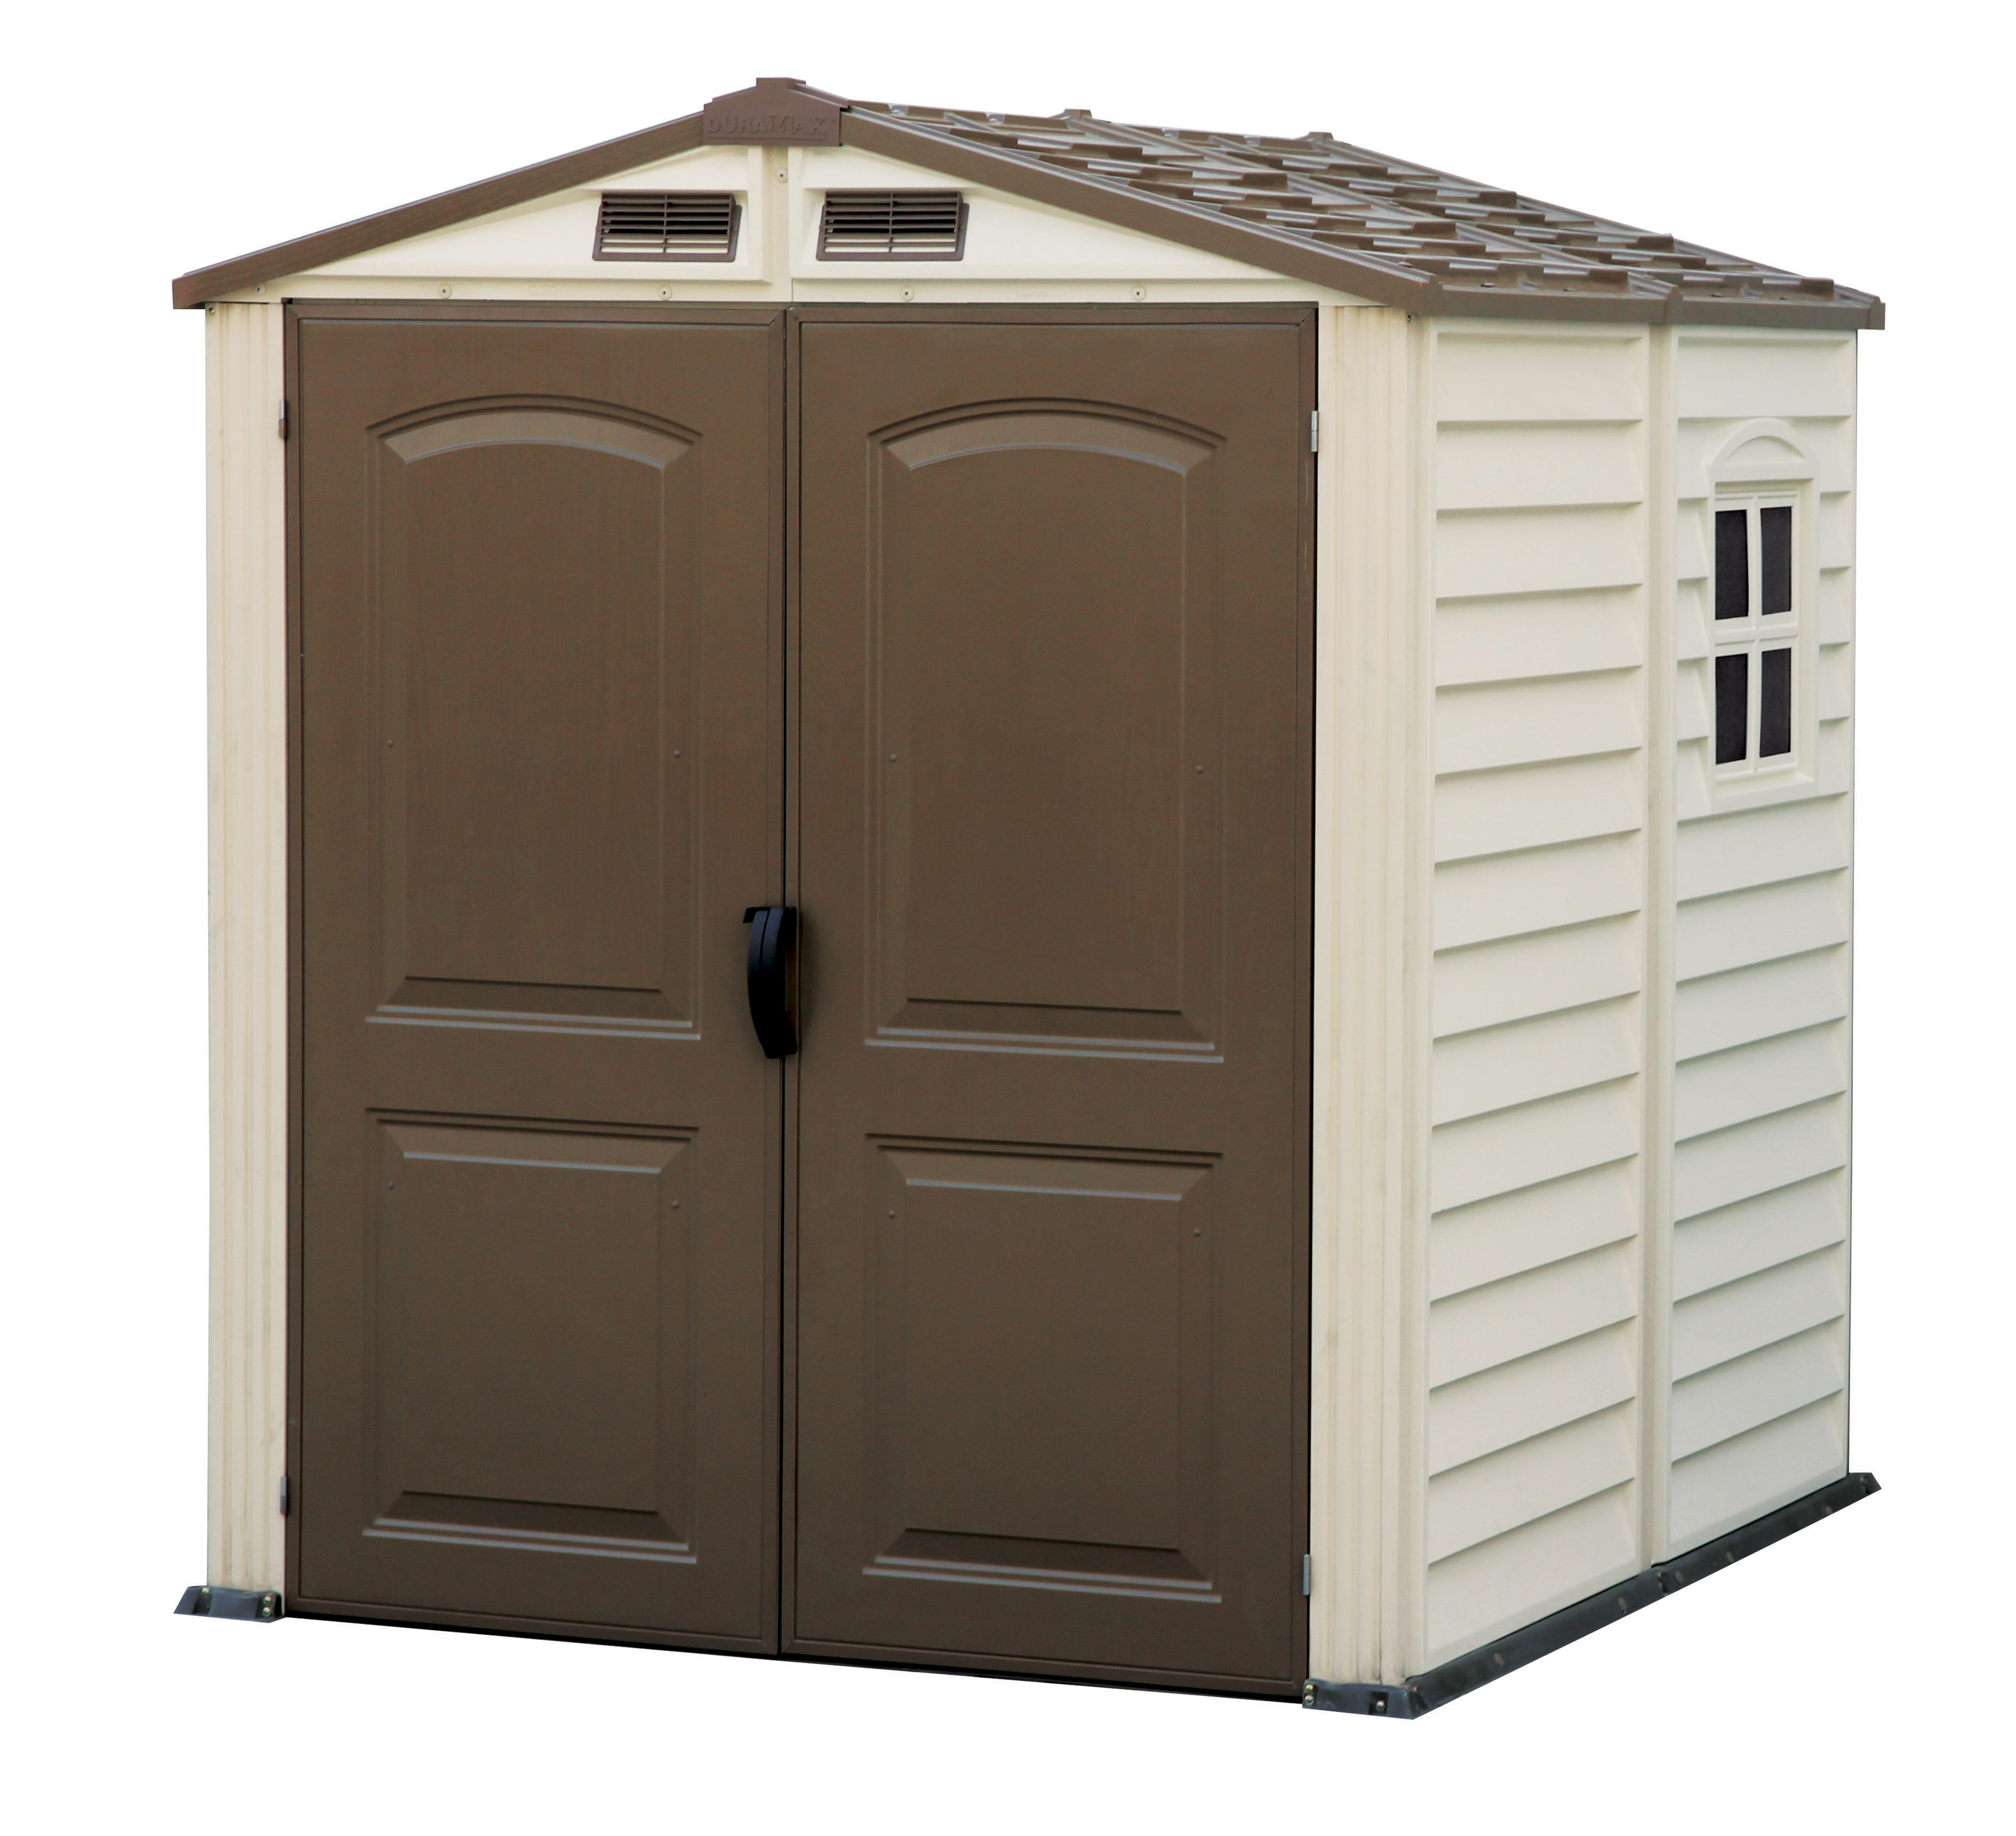 BillyOh Daily Apex Plastic Shed - Vinyl Clad Plastic Shed with floor